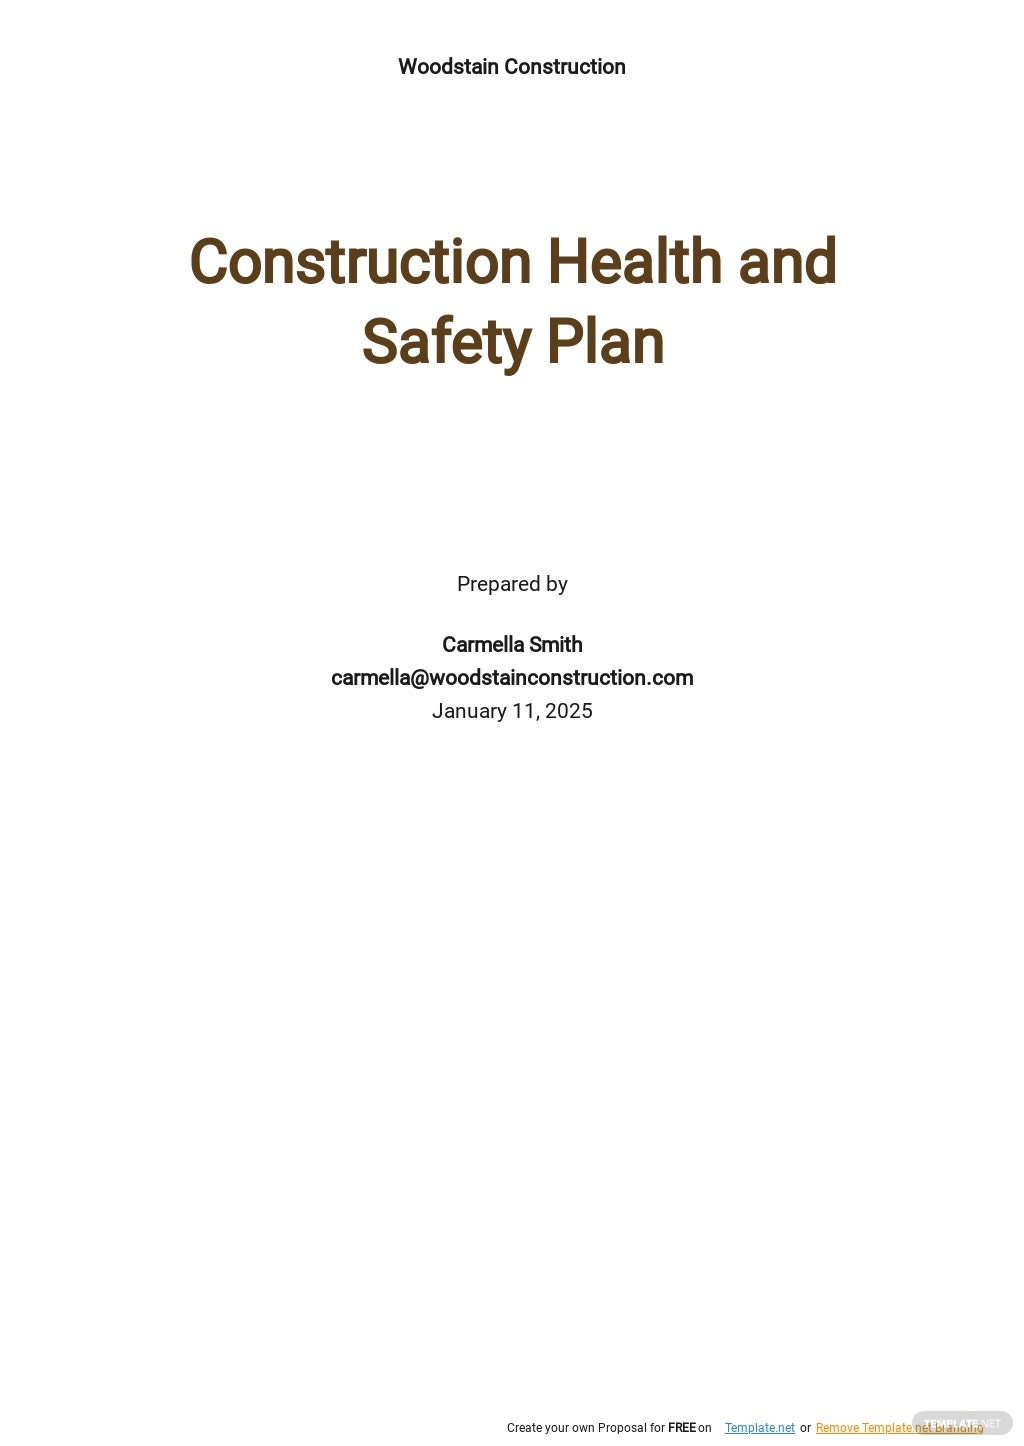 Construction Health and Safety Plan Template.jpe